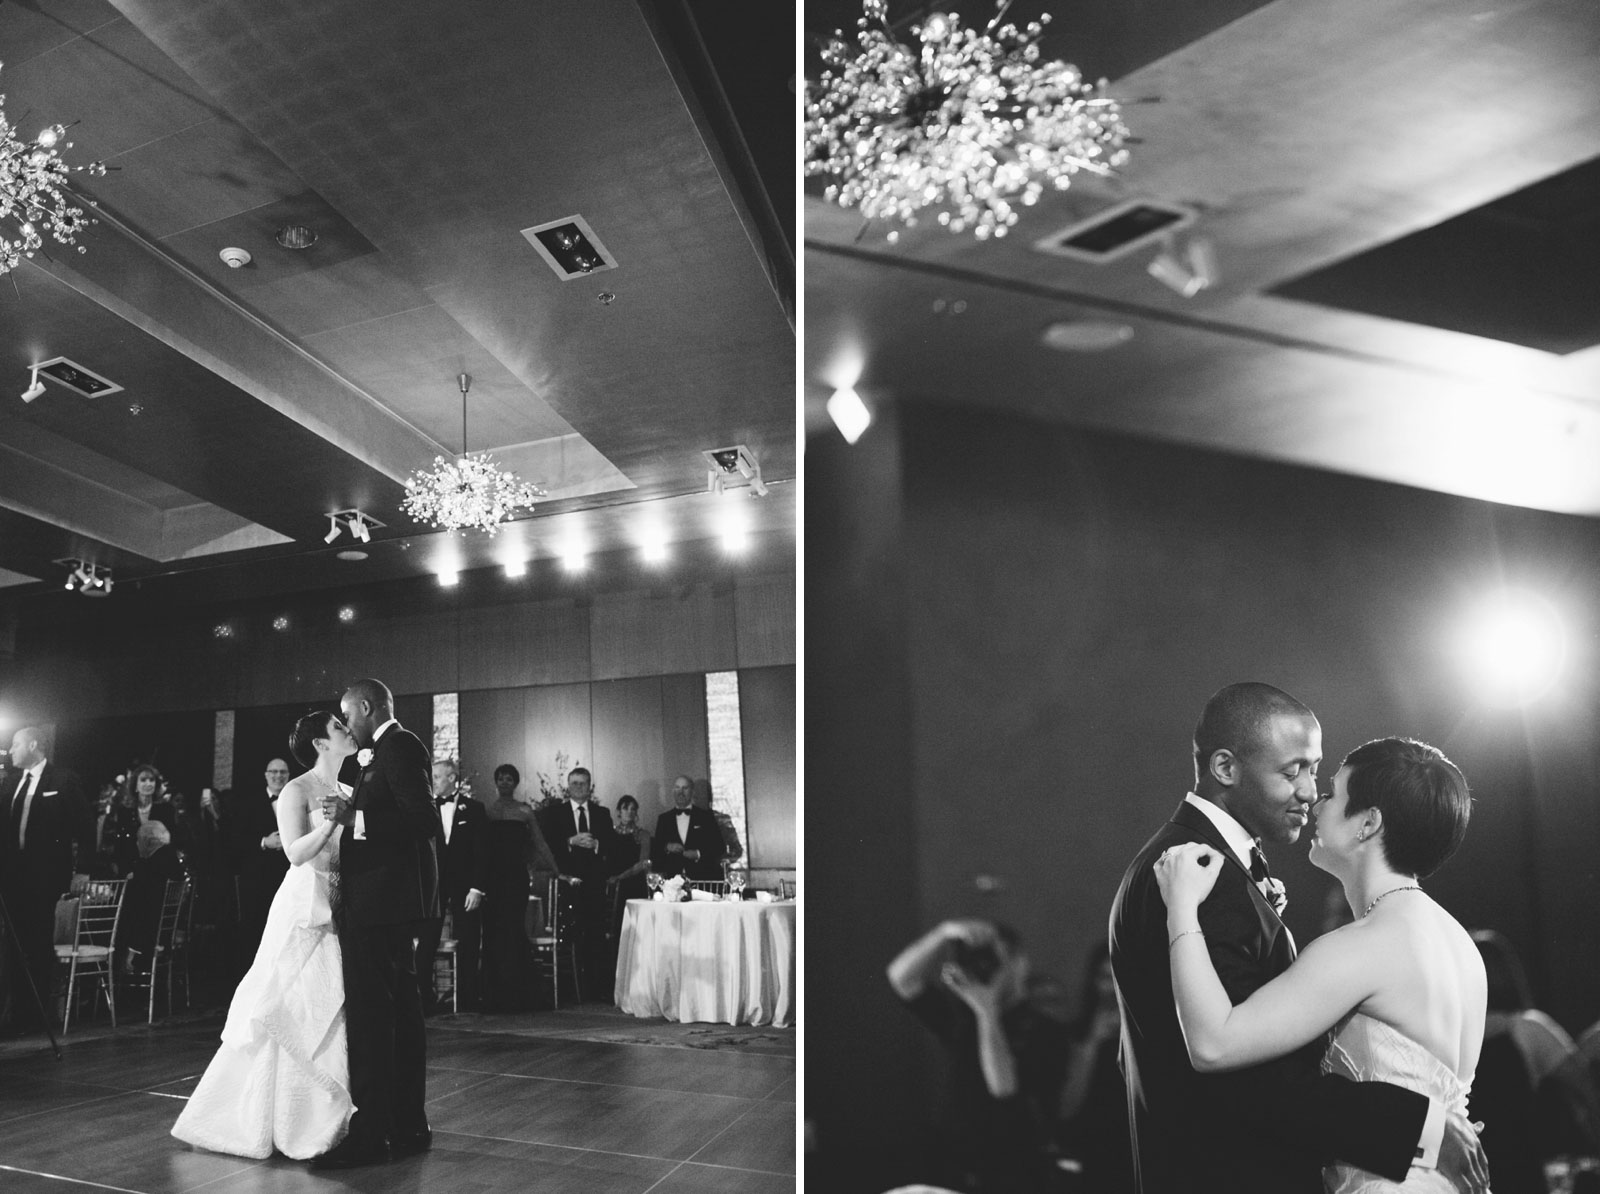 Romantic black and white shots of bride and groom sharing their first dance in Ritz-Carlton ballroom